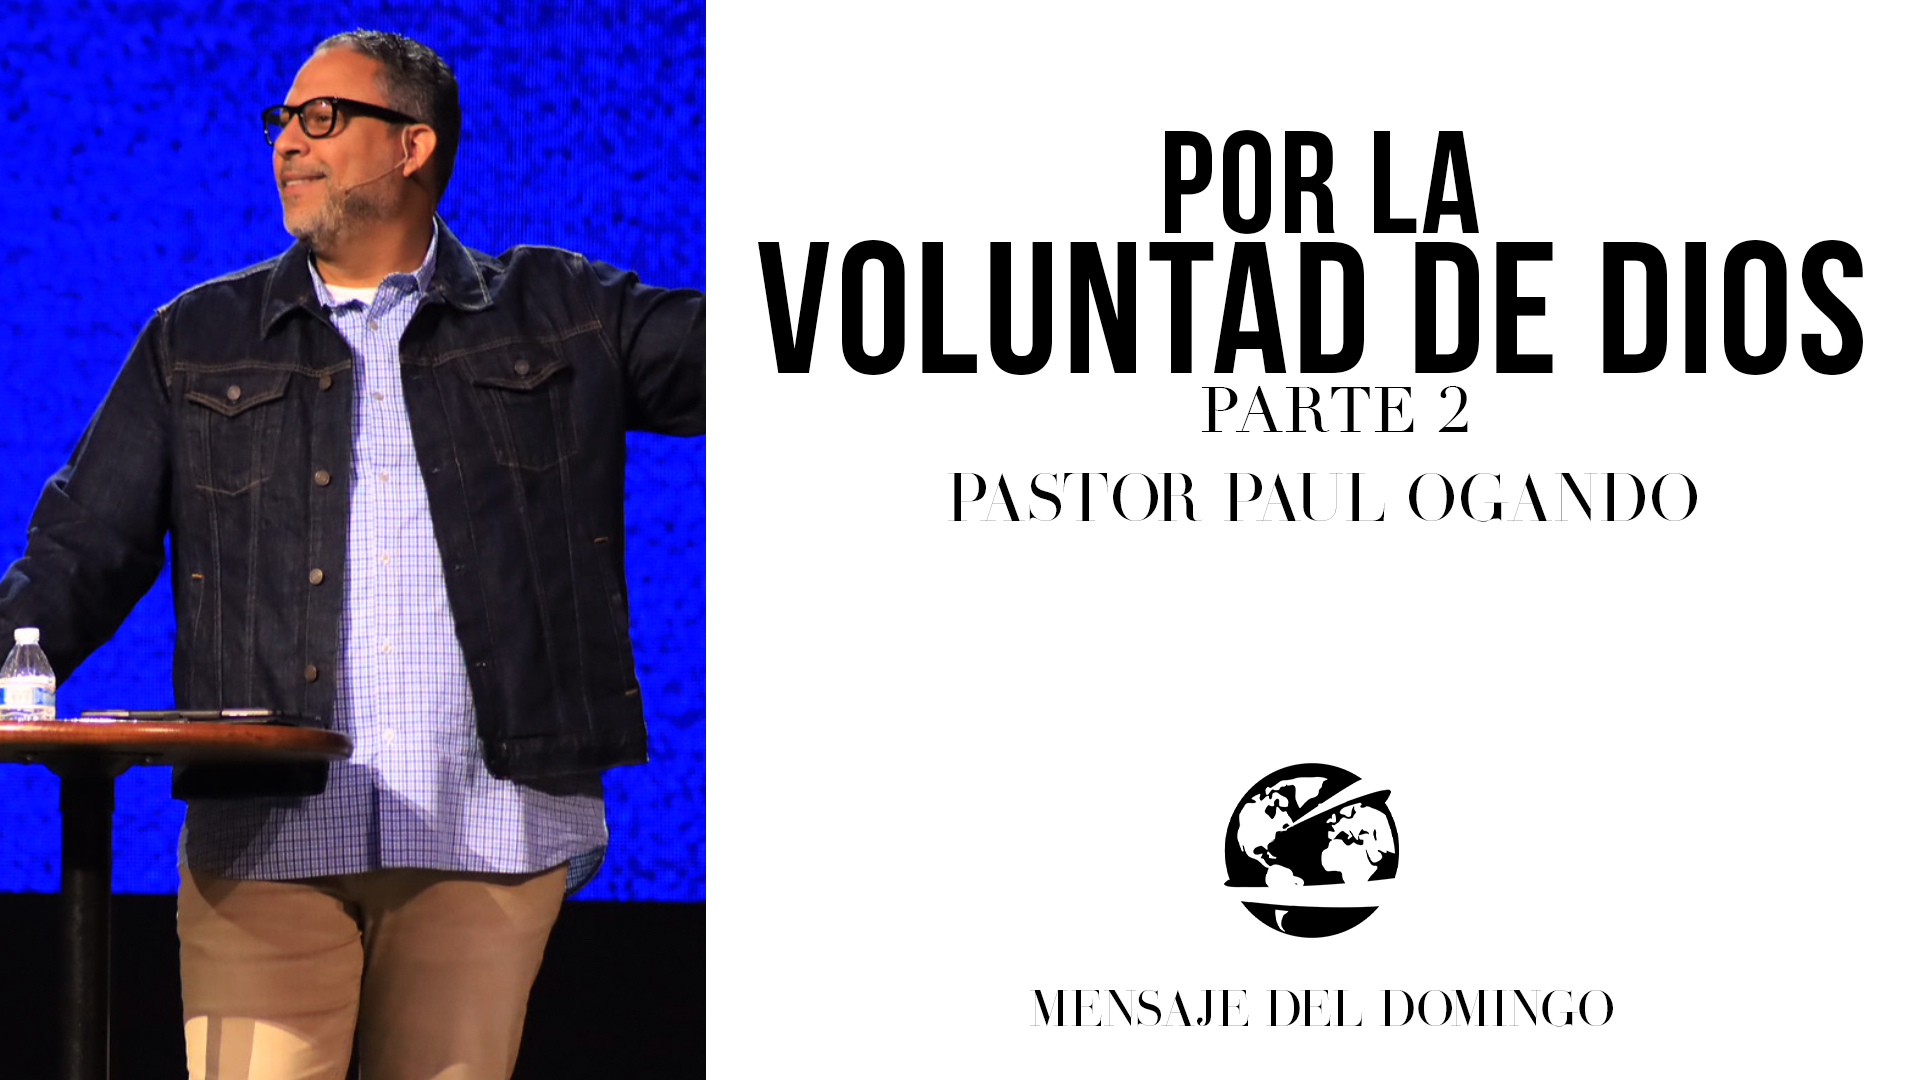 Watch Por La Voluntad De Dios Pt. 2